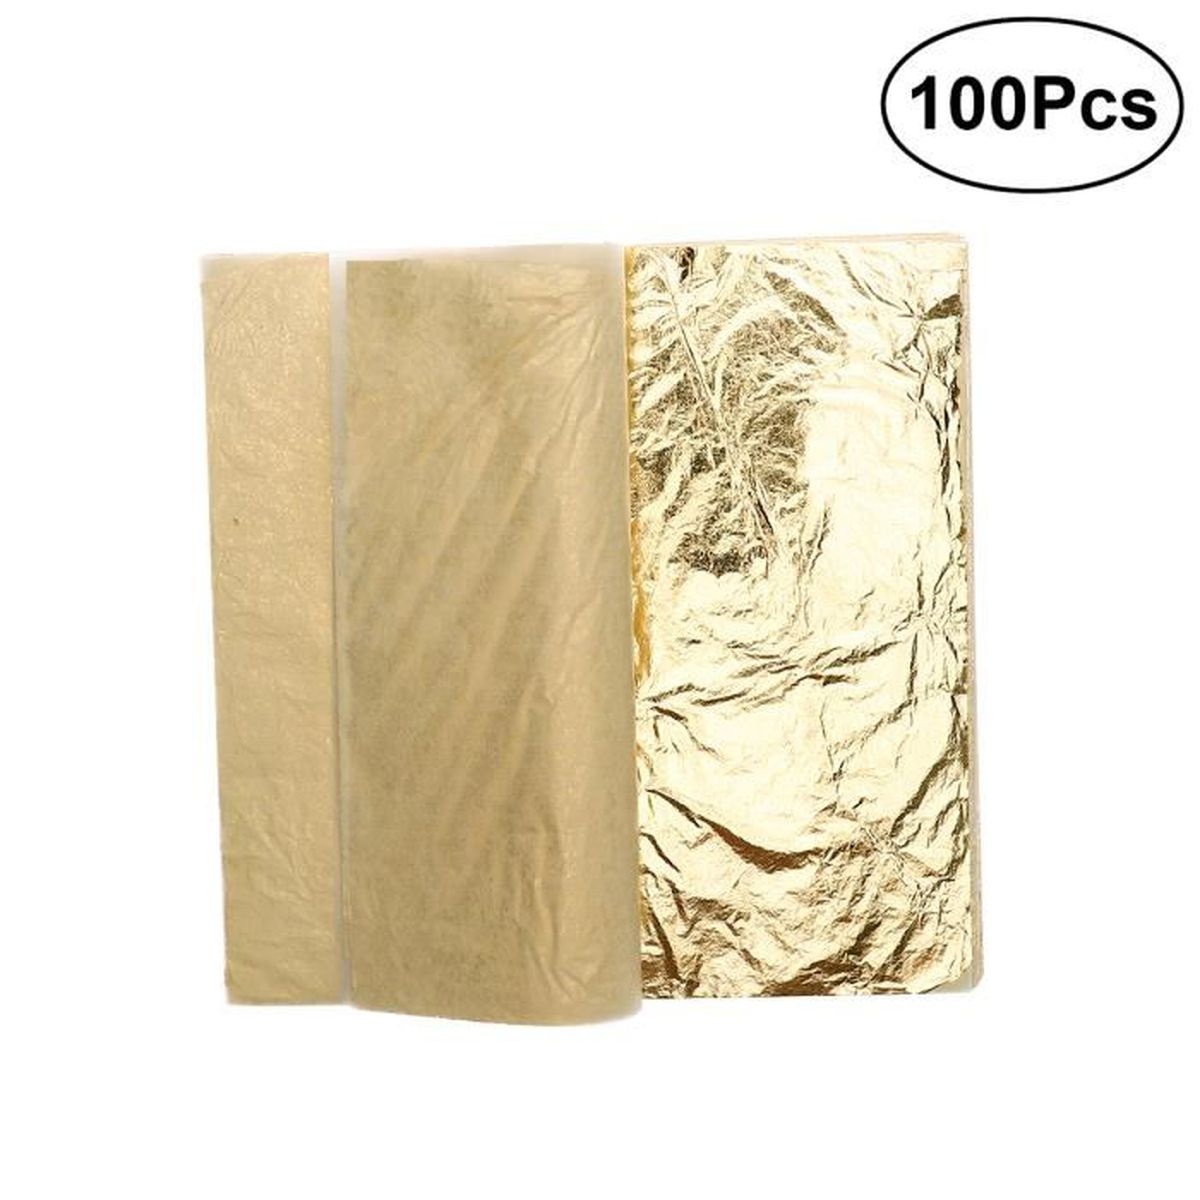 10 feuilles d/'or pur alimentaire 43 mm X 43 mm 24 carats 100/% veritable